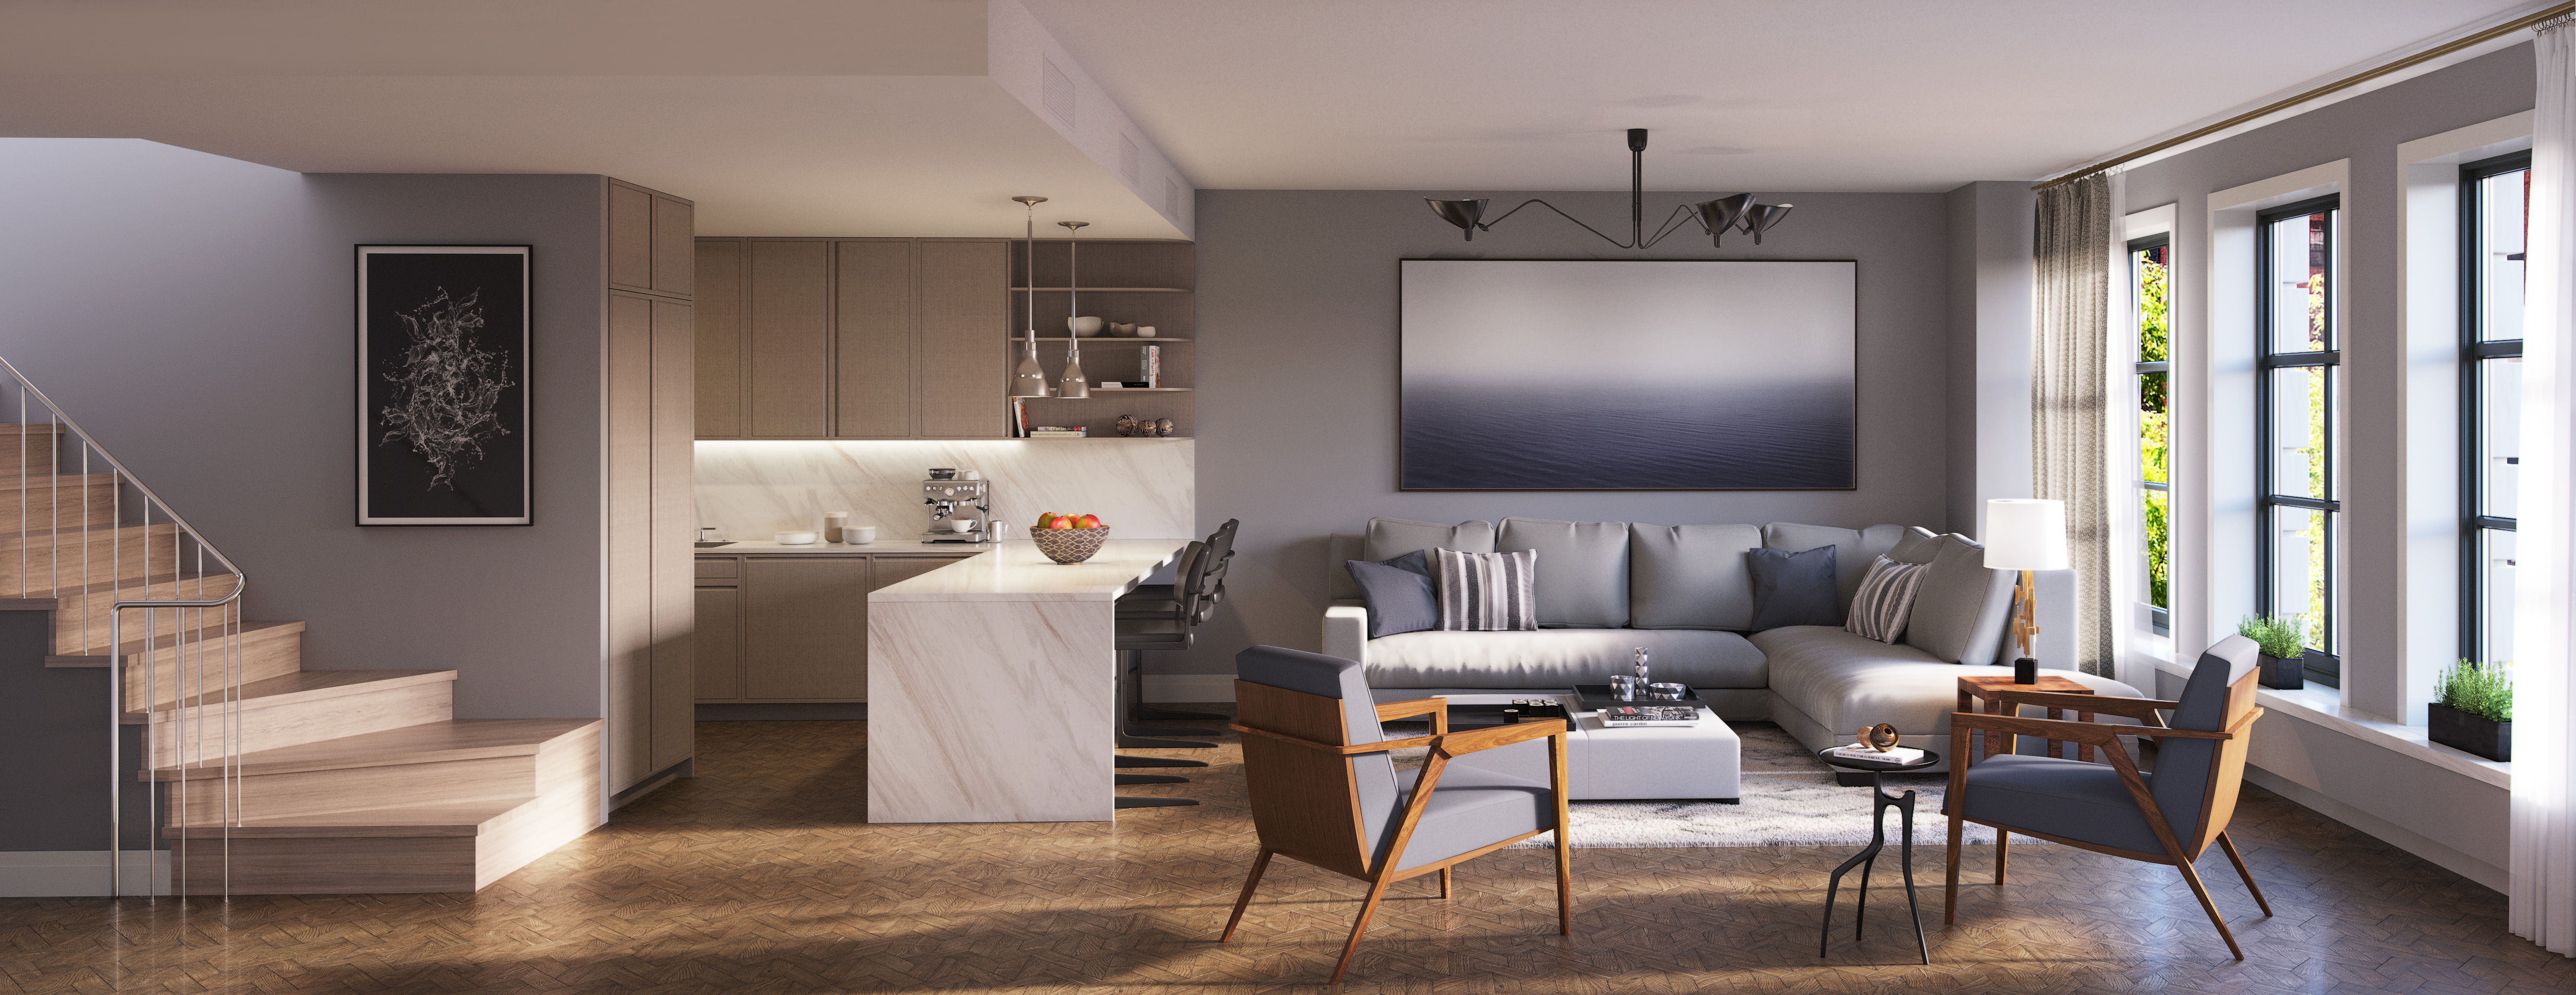 Rendering of lower level of a duplex at 207W79